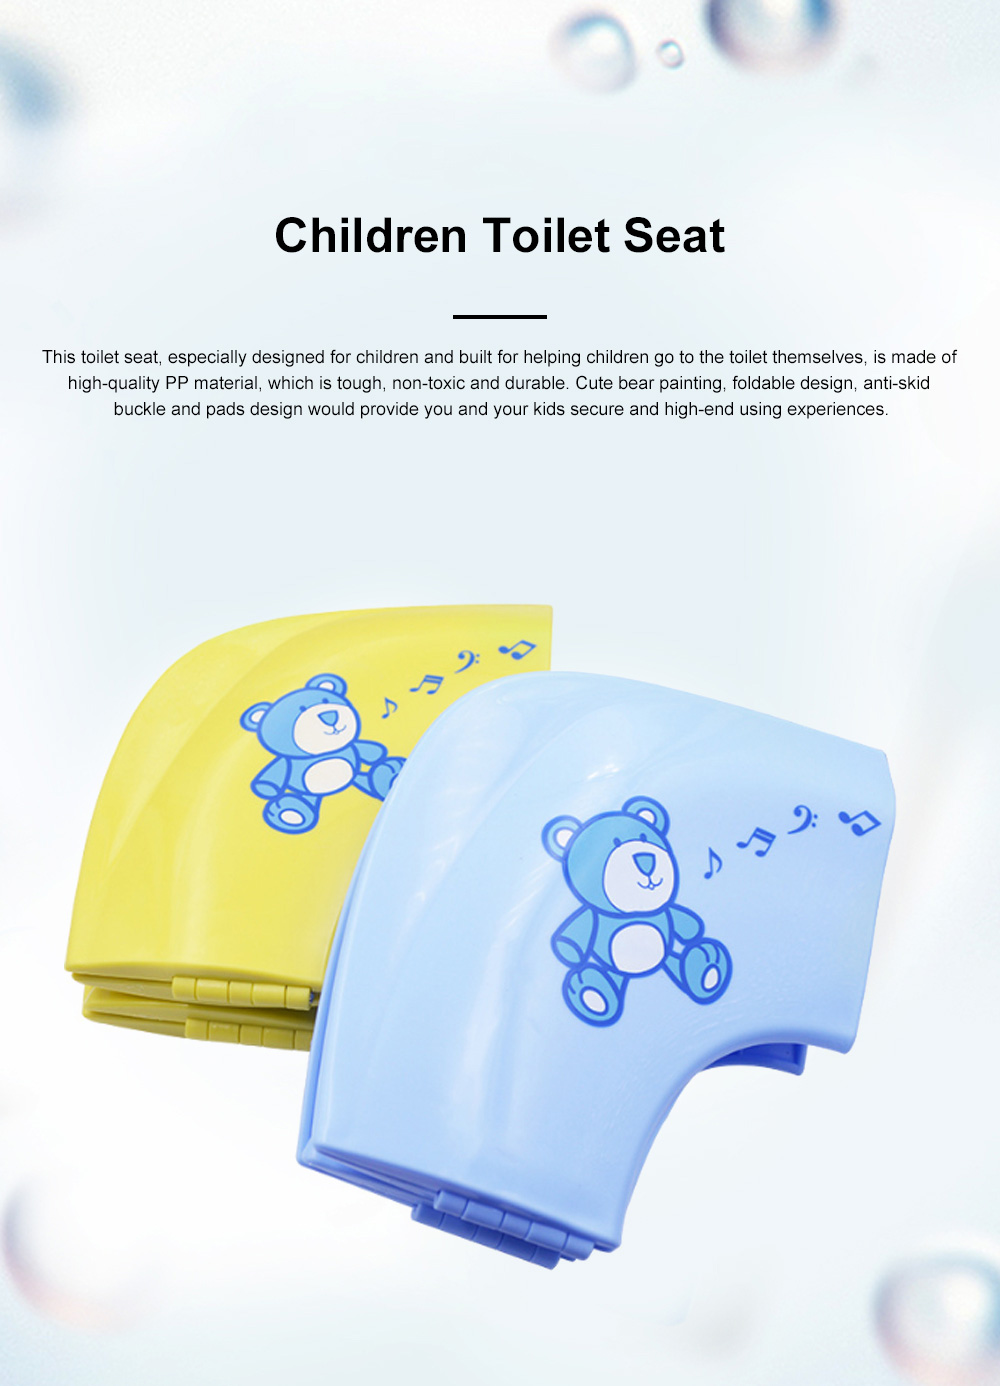 Portable Foldable Outdoors Traveling Children Safety Toilet Seat with Anti-skid Pads Buckles Kids Toilet Cushion 0